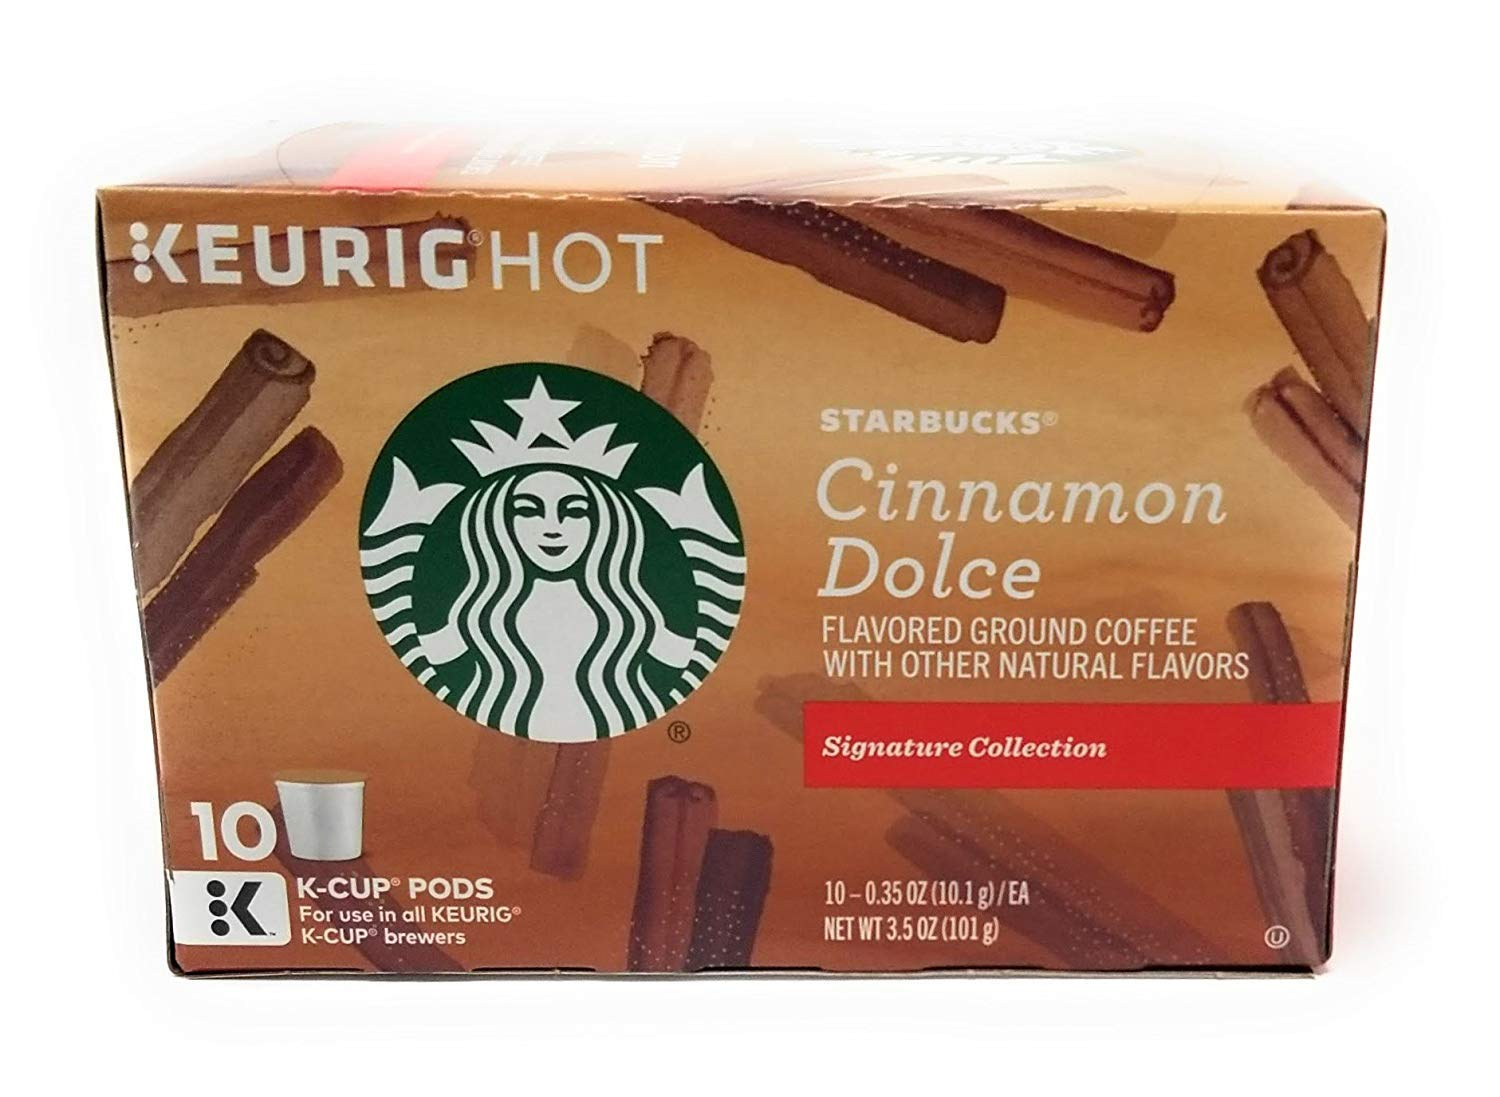 Starbucks Cinnamon Dolce K-Cup for Keurig K-Cup Brewers, 10 Count (Pack of 3)